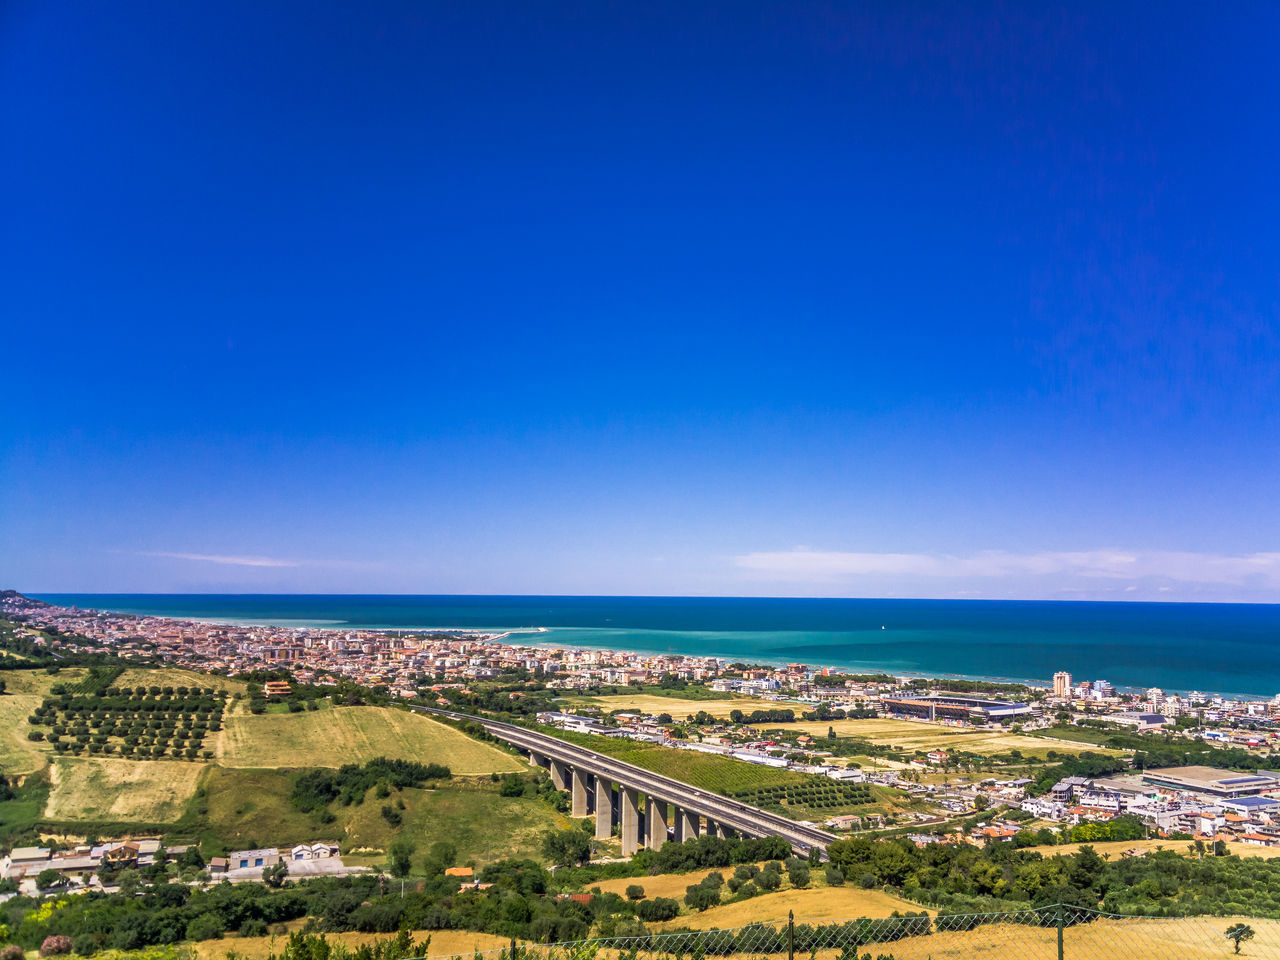 Architecture Beach Beauty In Nature Blue Clear Sky Day High Angle View Hill Hills Horizon Over Water Italian Landscapes Landscape Landscape_Collection Midday Nature No People Outdoors San Benedetto Del Tronto Scenics Sea Sky Sunlight Tranquility Travel Destinations Water